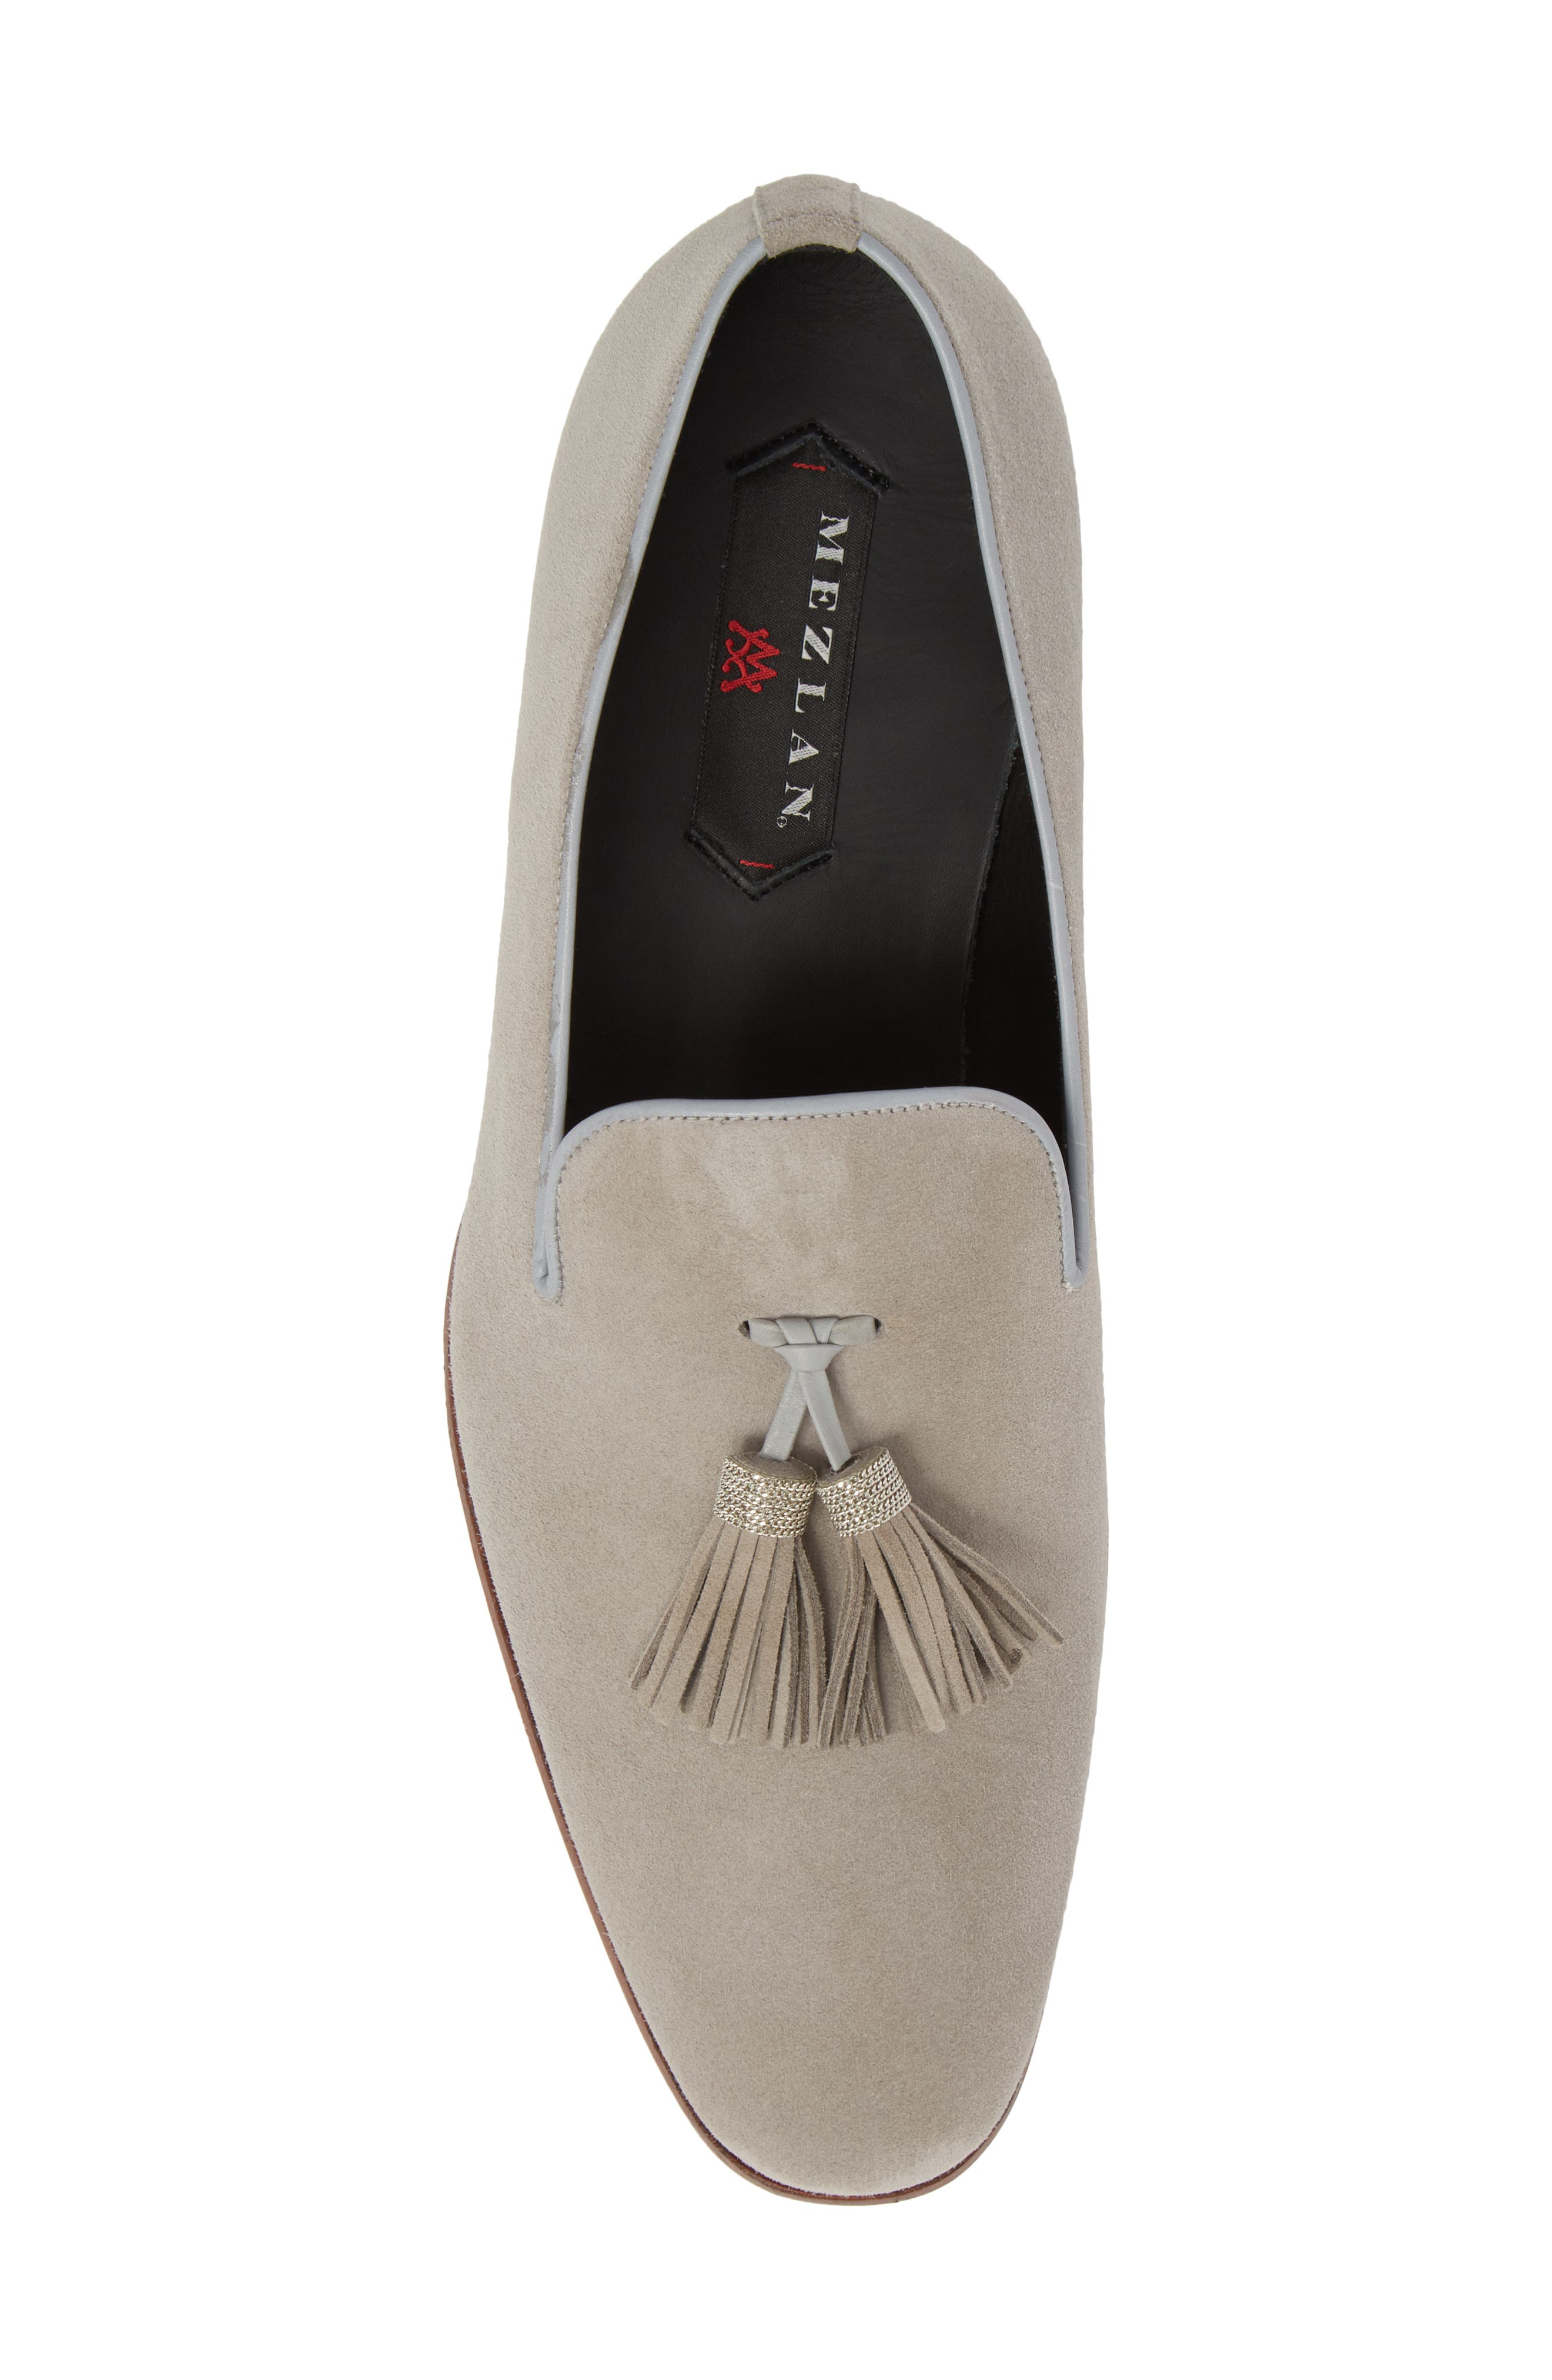 Picus Tassel Loafer,                             Alternate thumbnail 5, color,                             PEARL GREY SUEDE